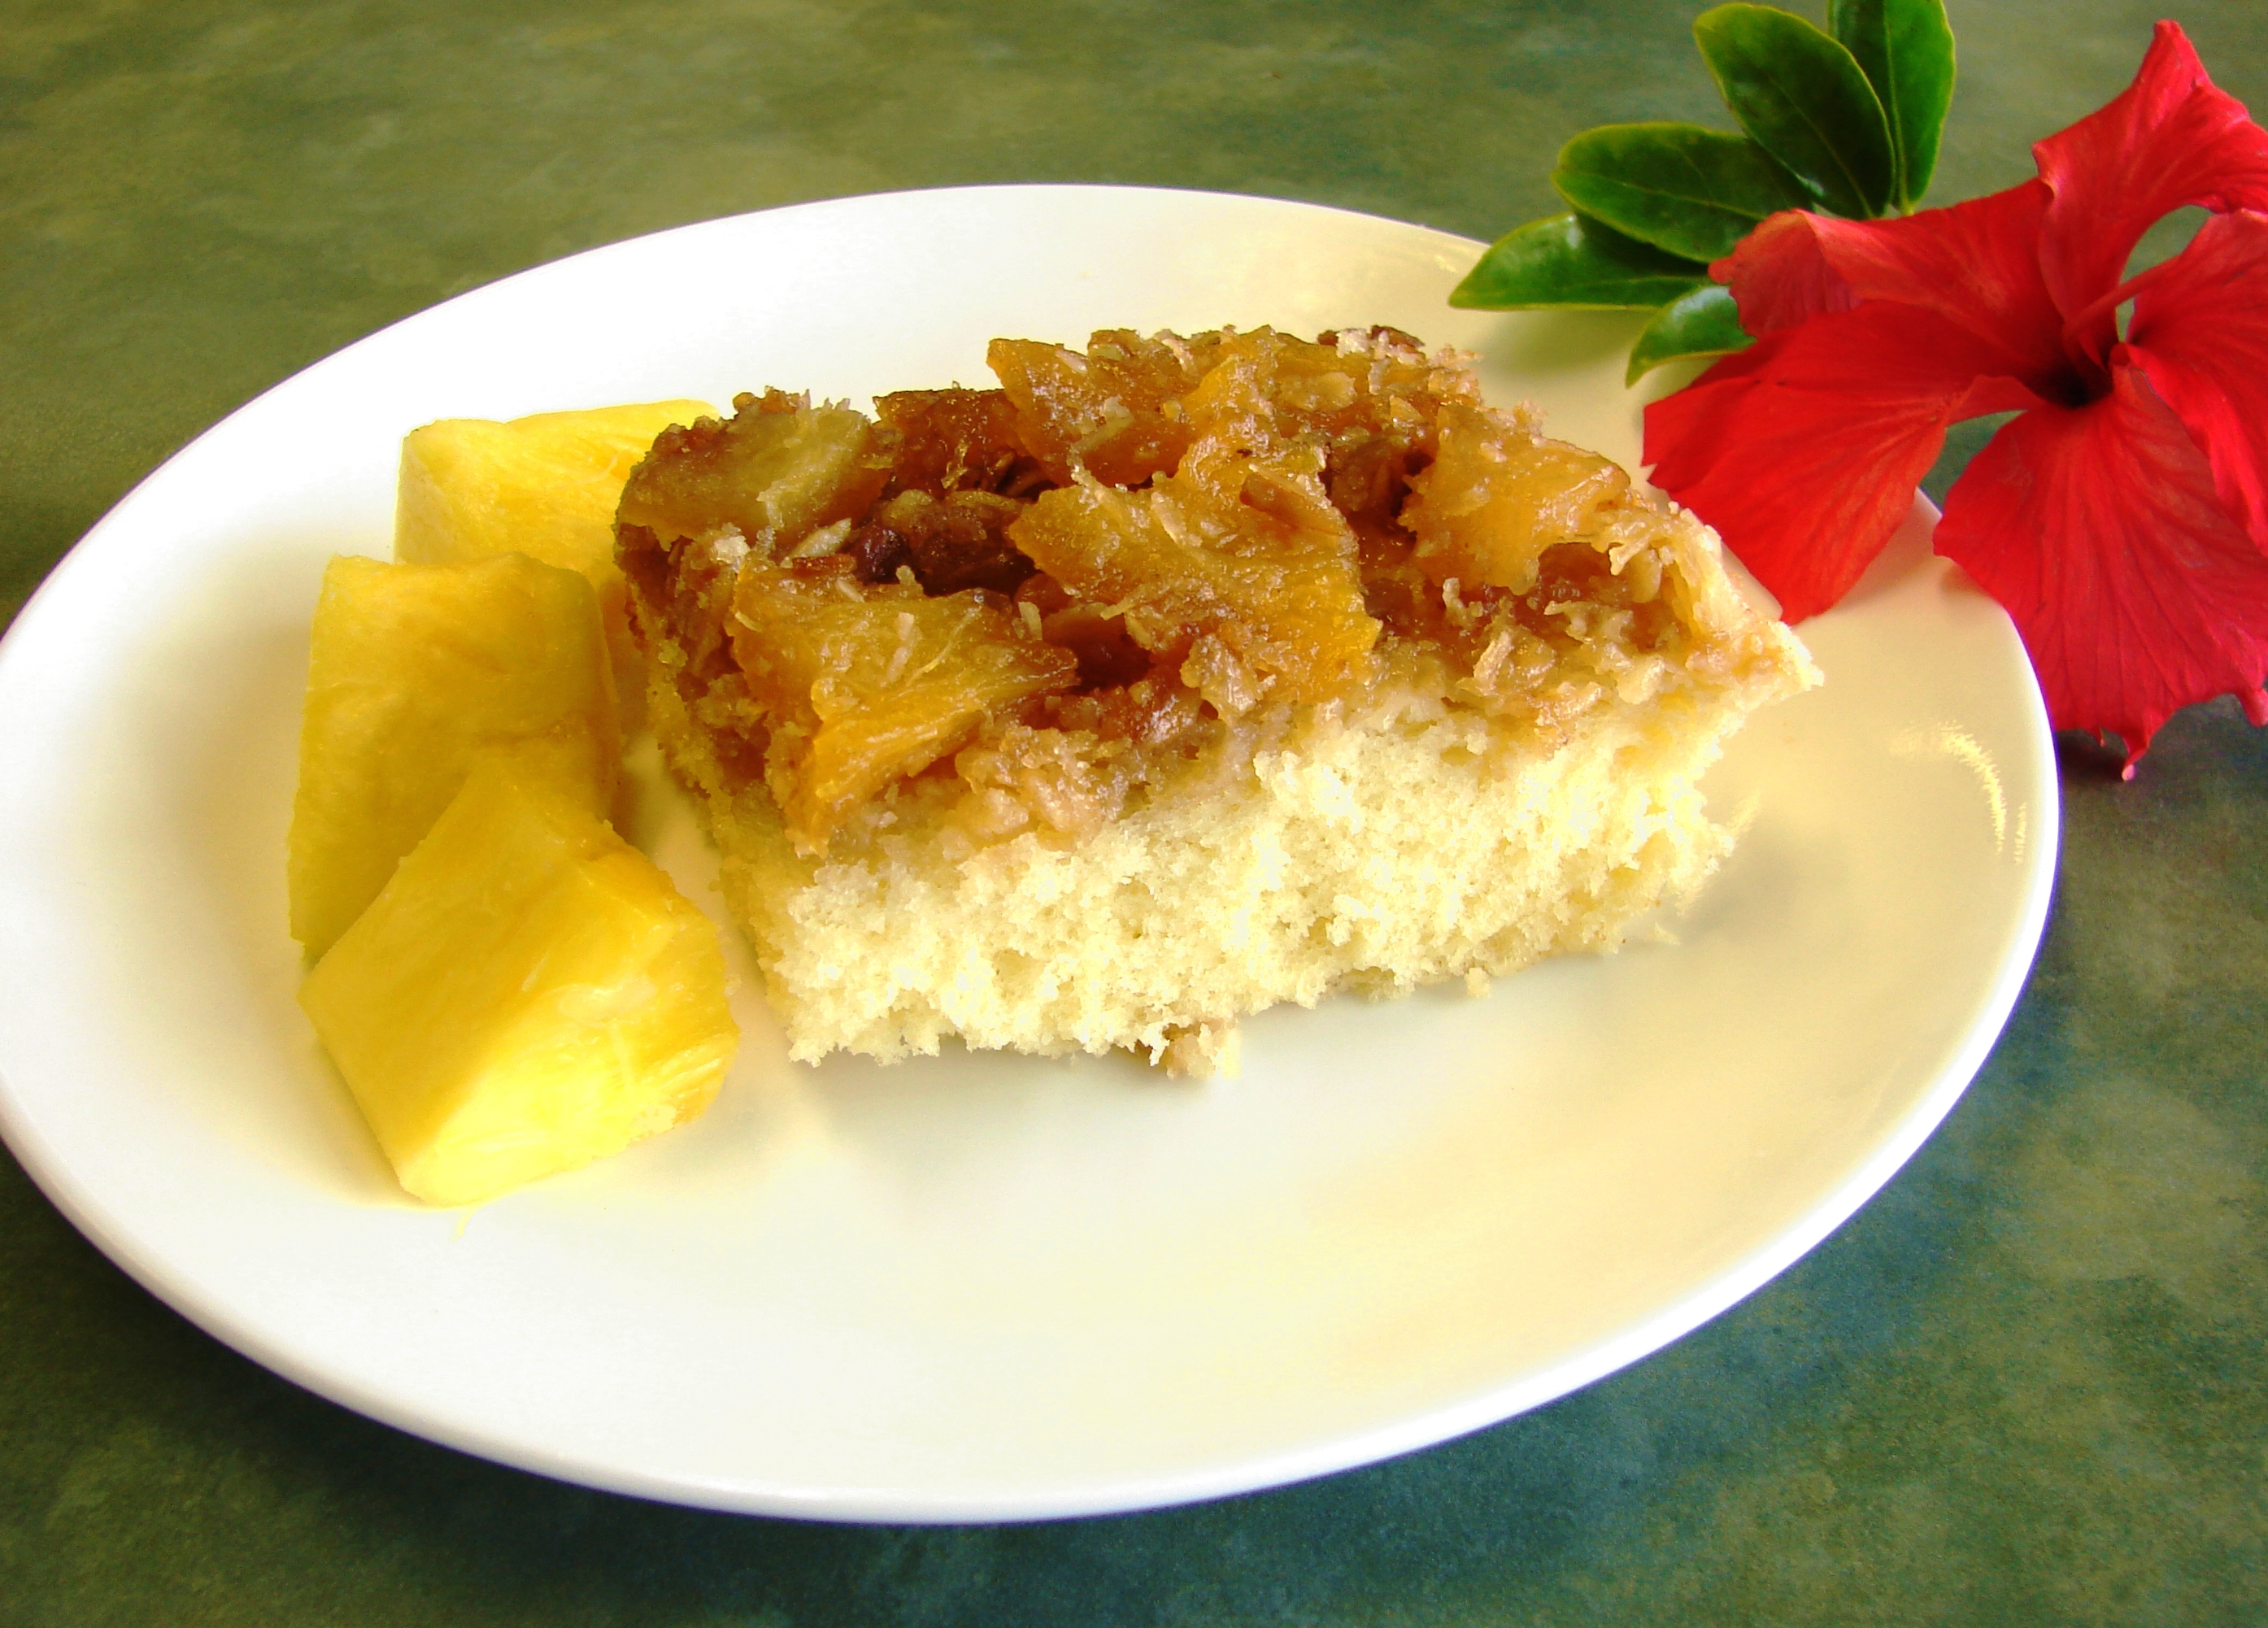 Tropical Pineapple Upside Down Cake from the Polynesian Cultural Center